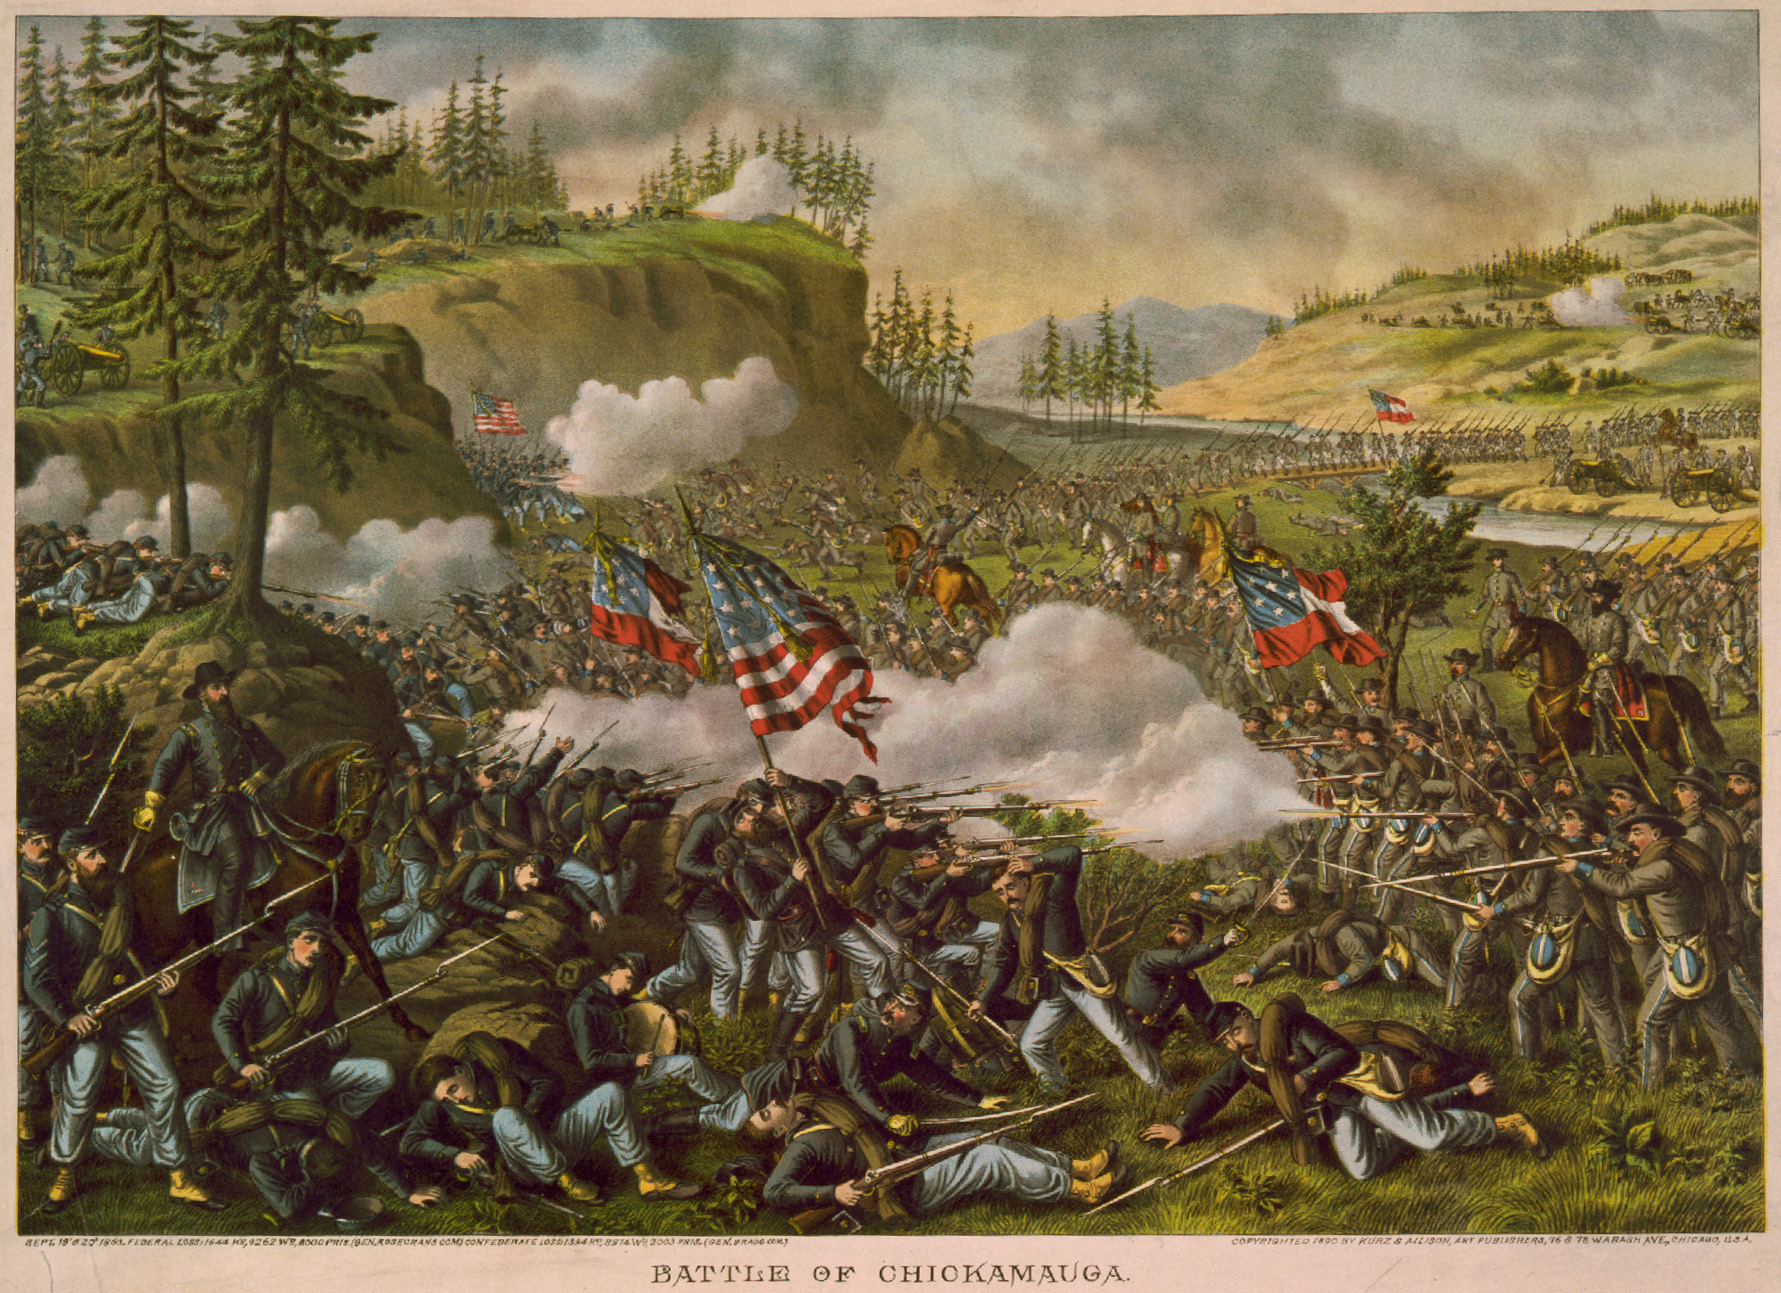 Battle of Chickamauga (lithograph by Kurz and Allison, 1890)